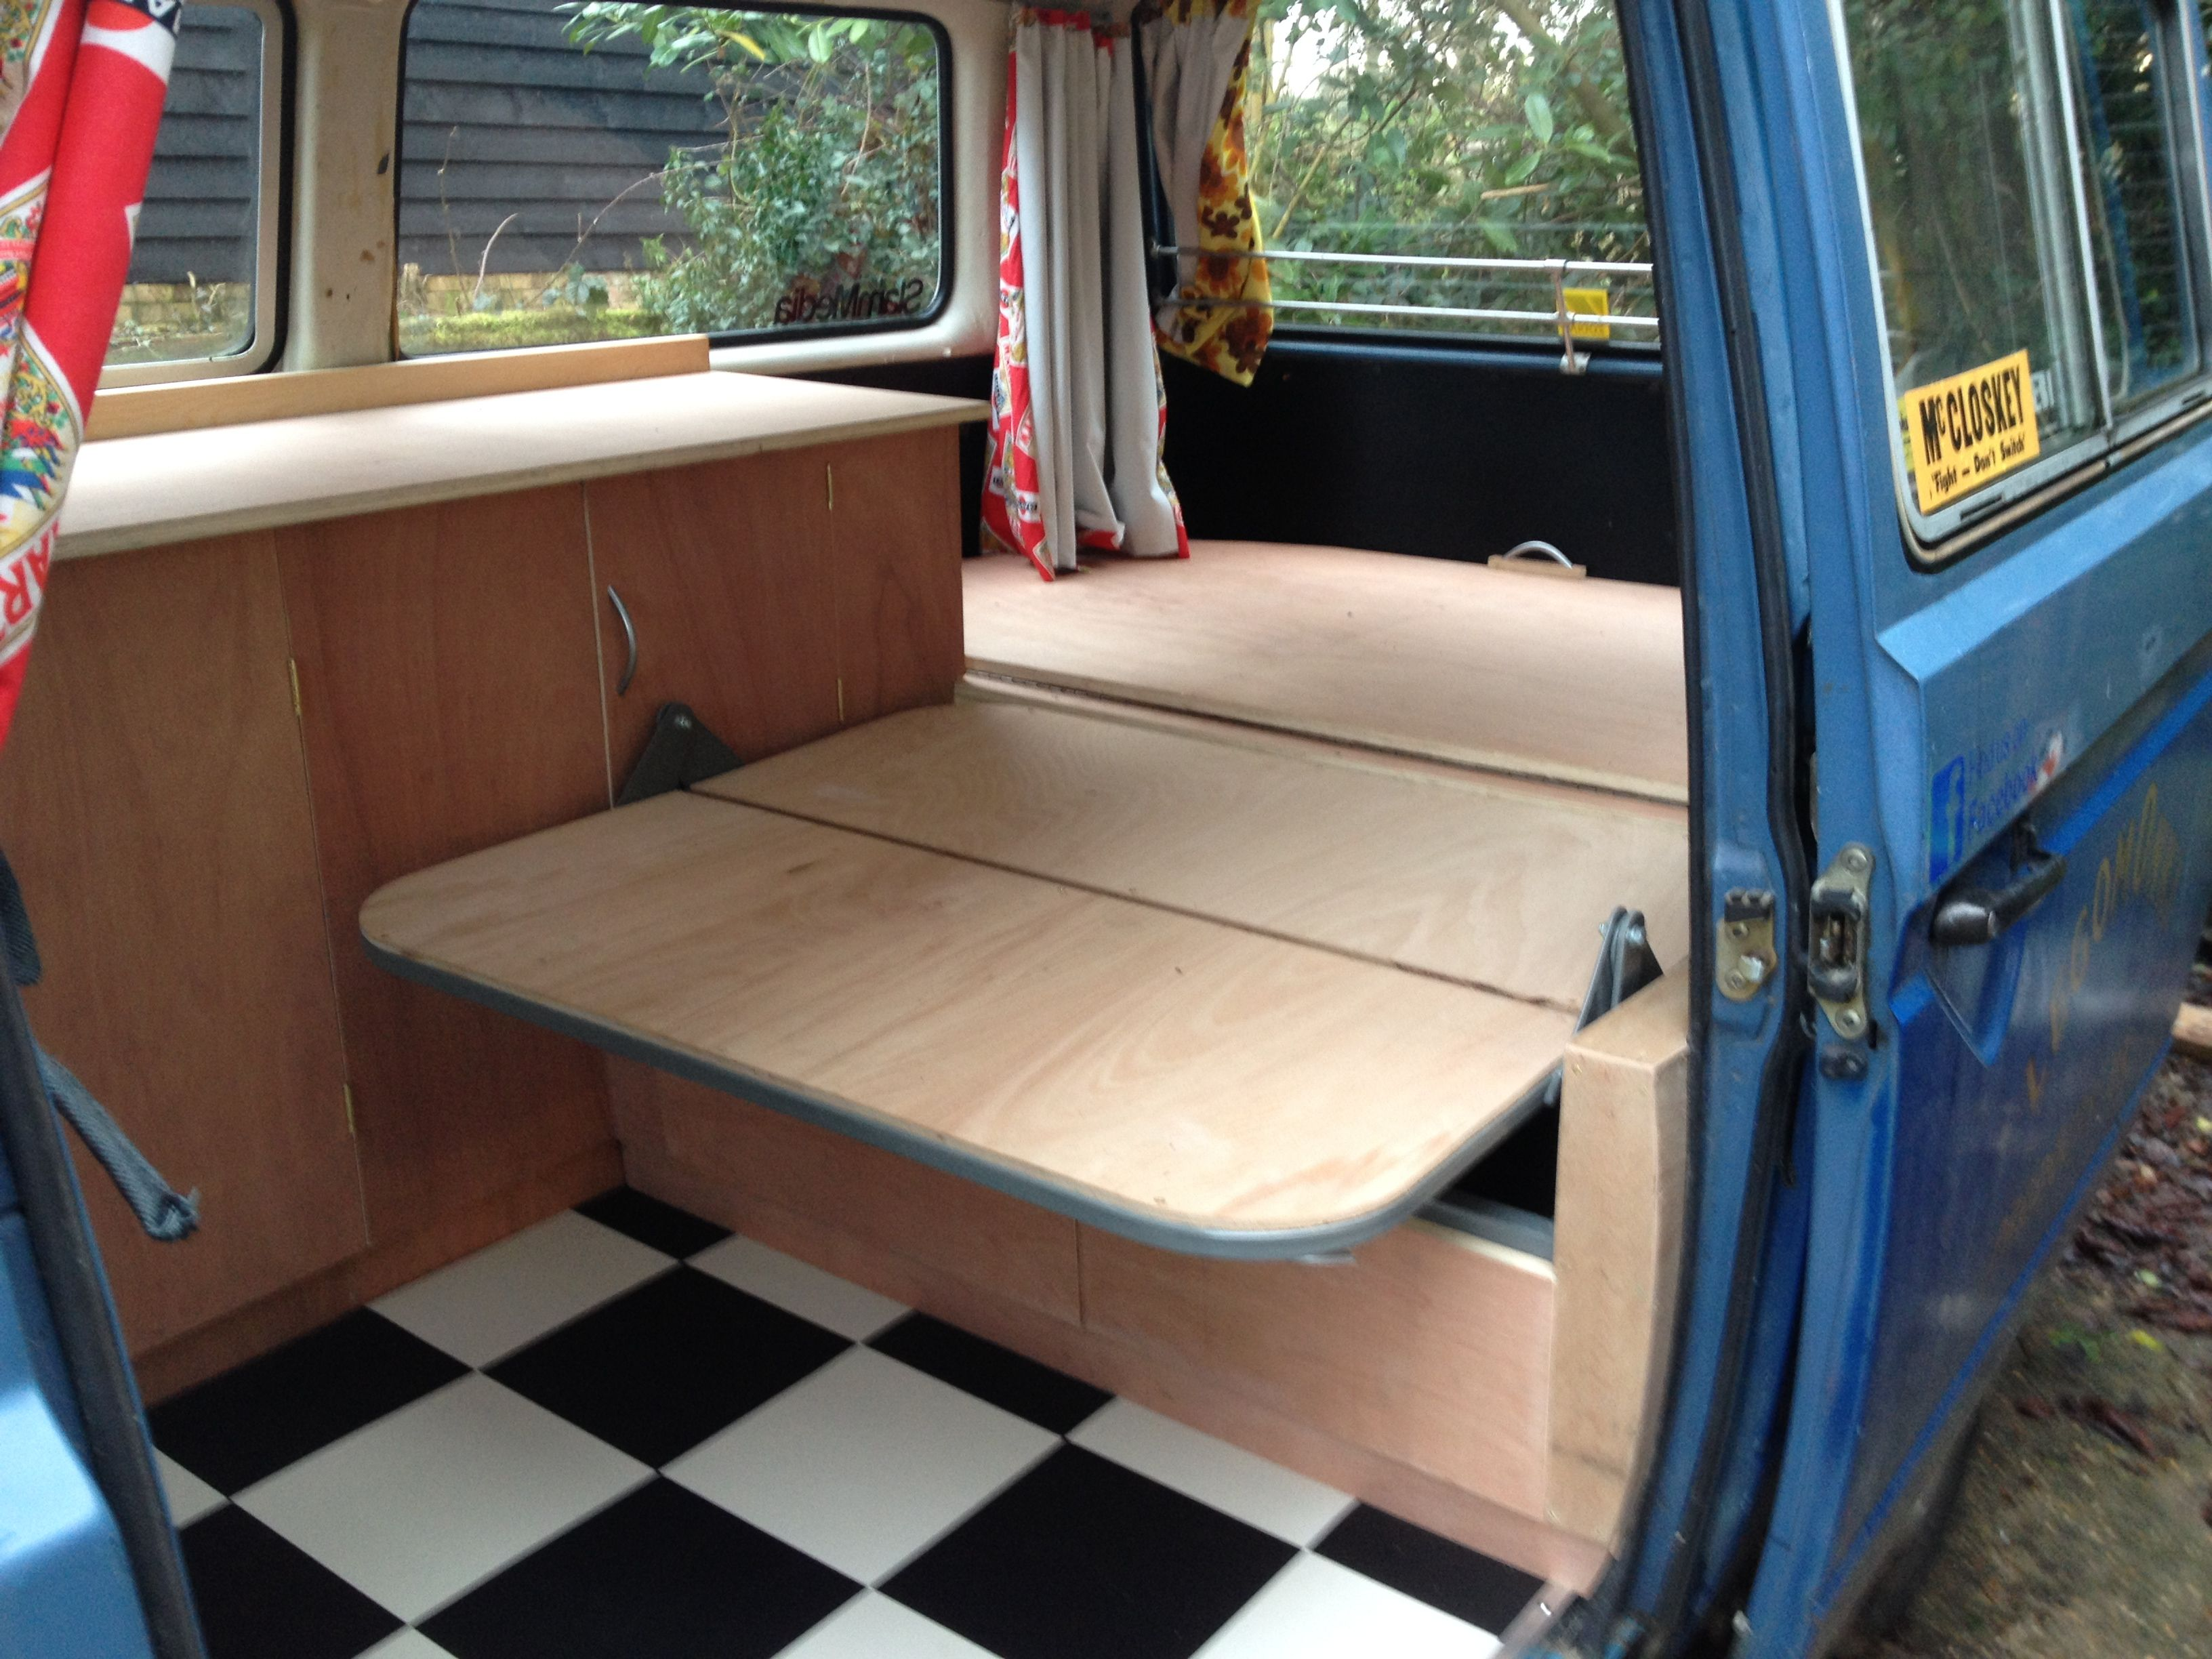 Custom Built Interior We Did In This T25 Volkswagen All On A Very Tight Budget Rusty Lee R R Bed Plywood Cabinets Plywood Cabinets Vinyl Flooring Interior